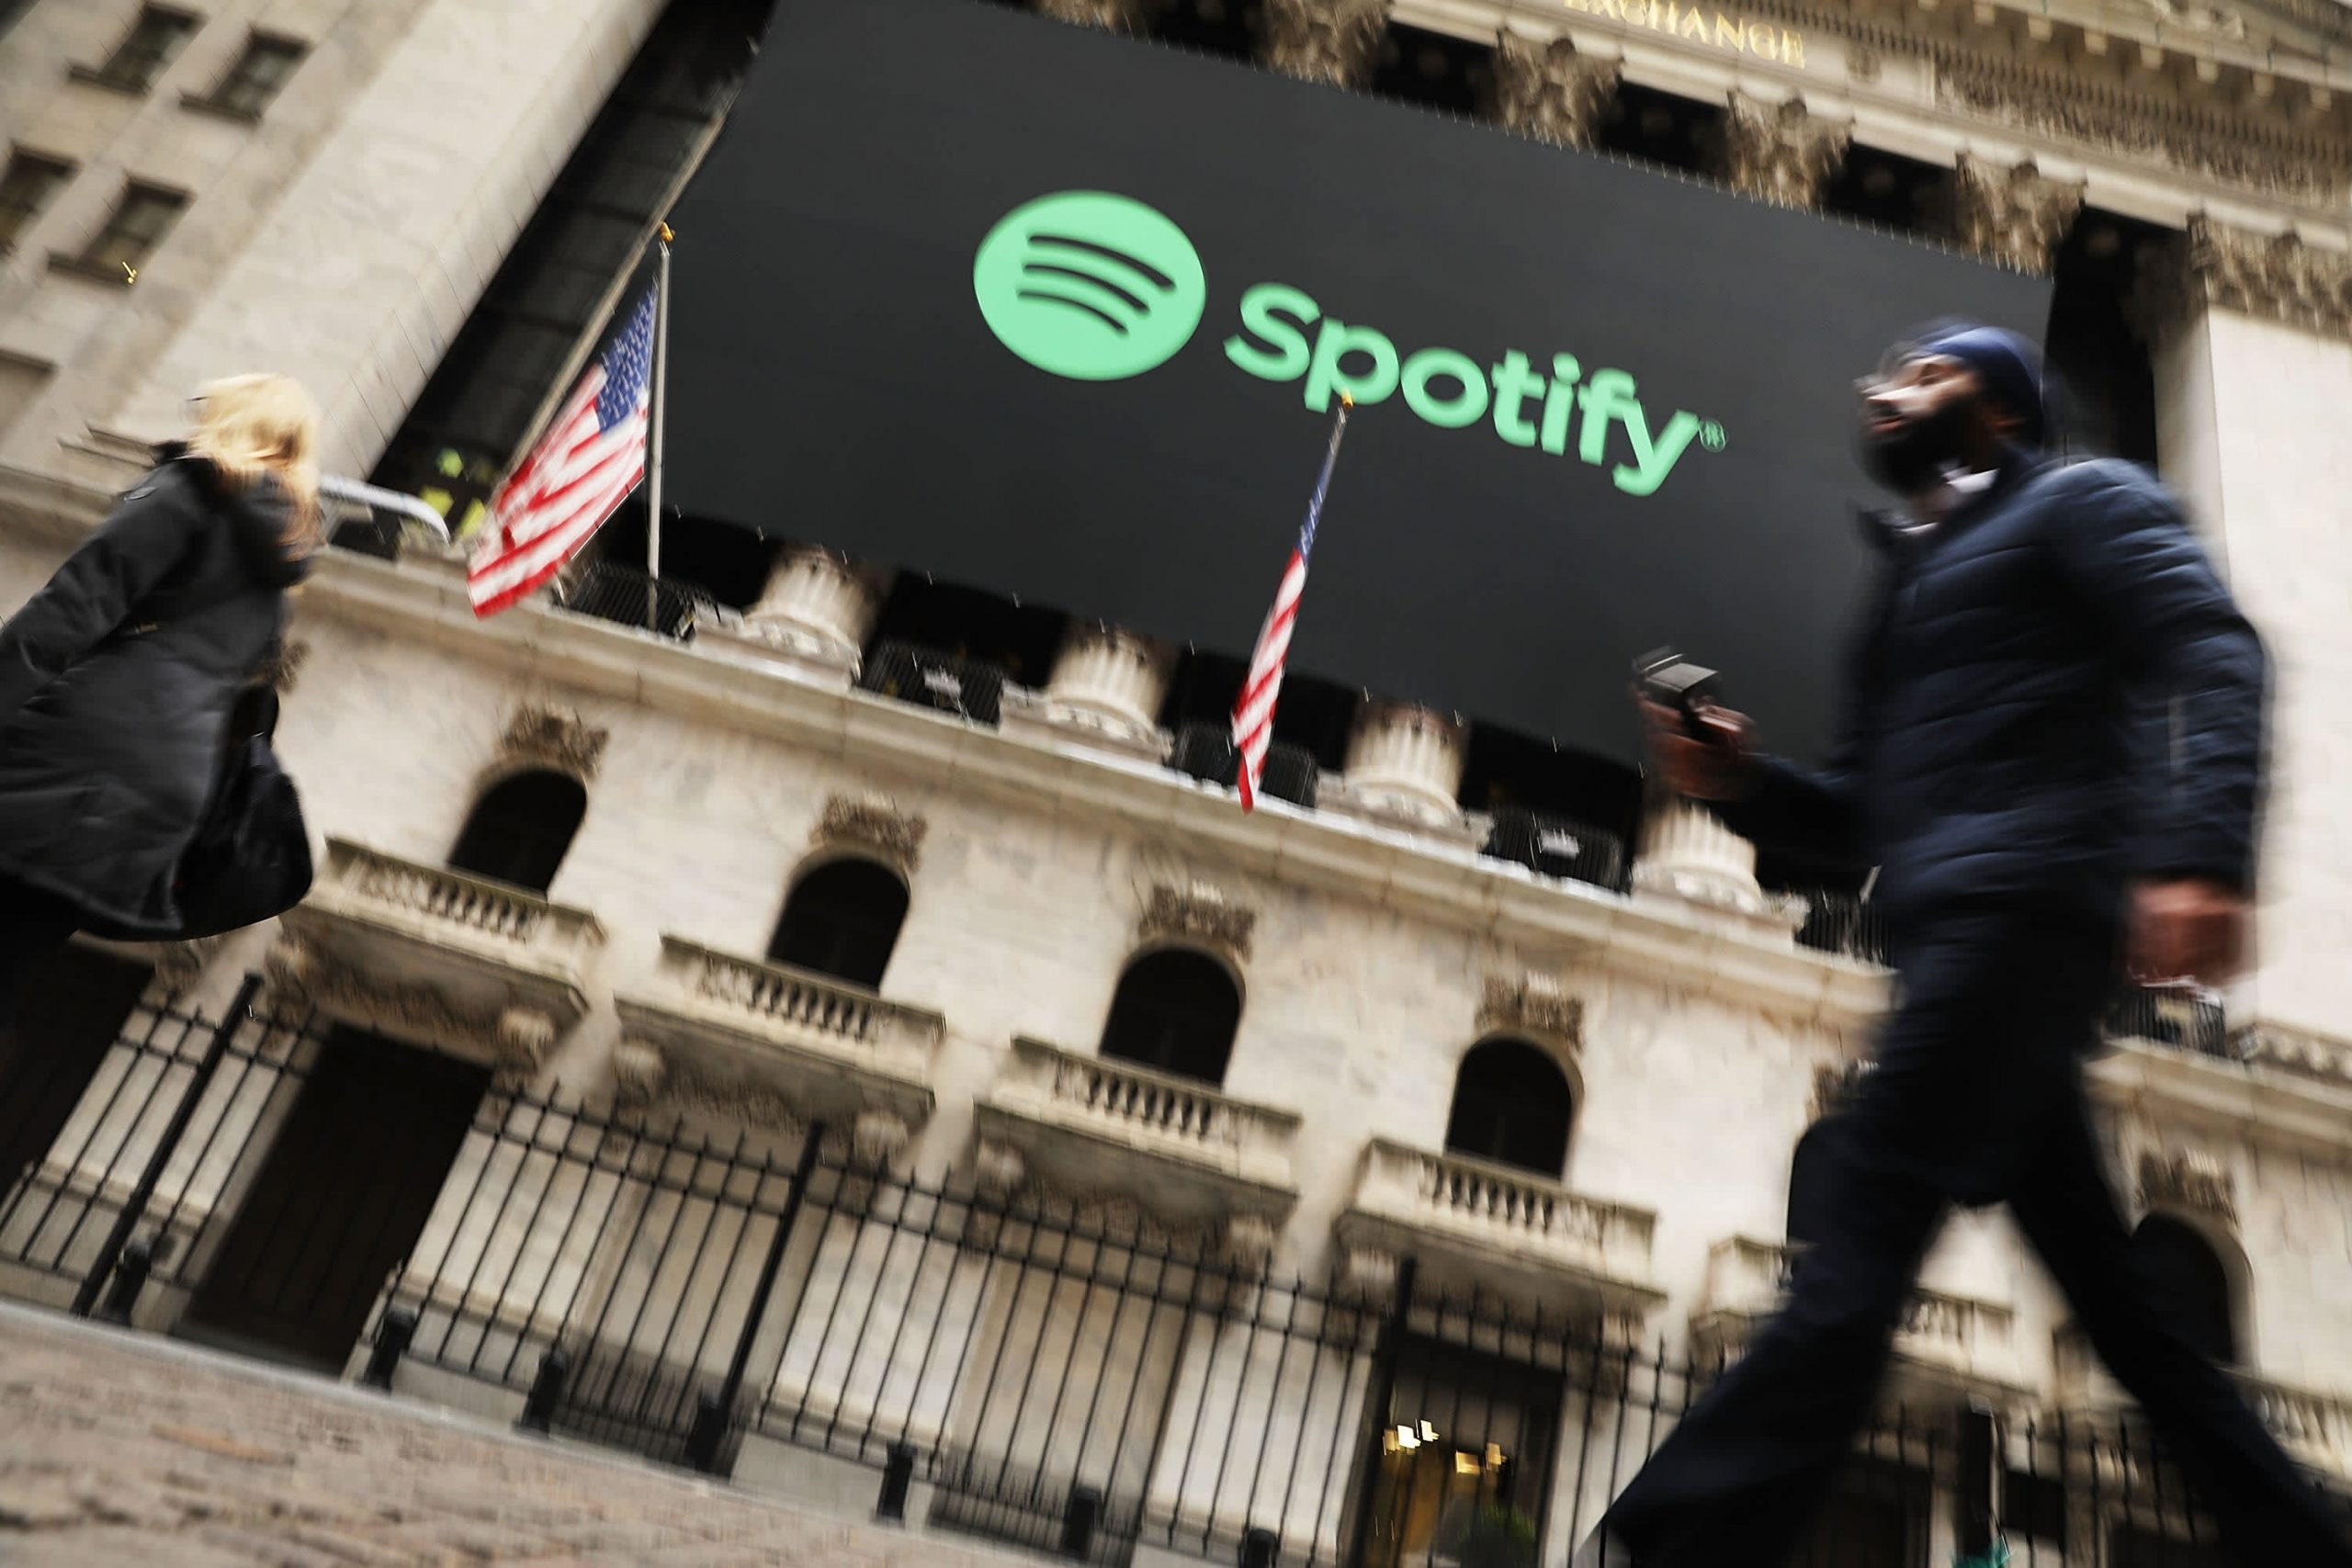 Spotify acquires Betty Labs, maker of live audio app Locker Room